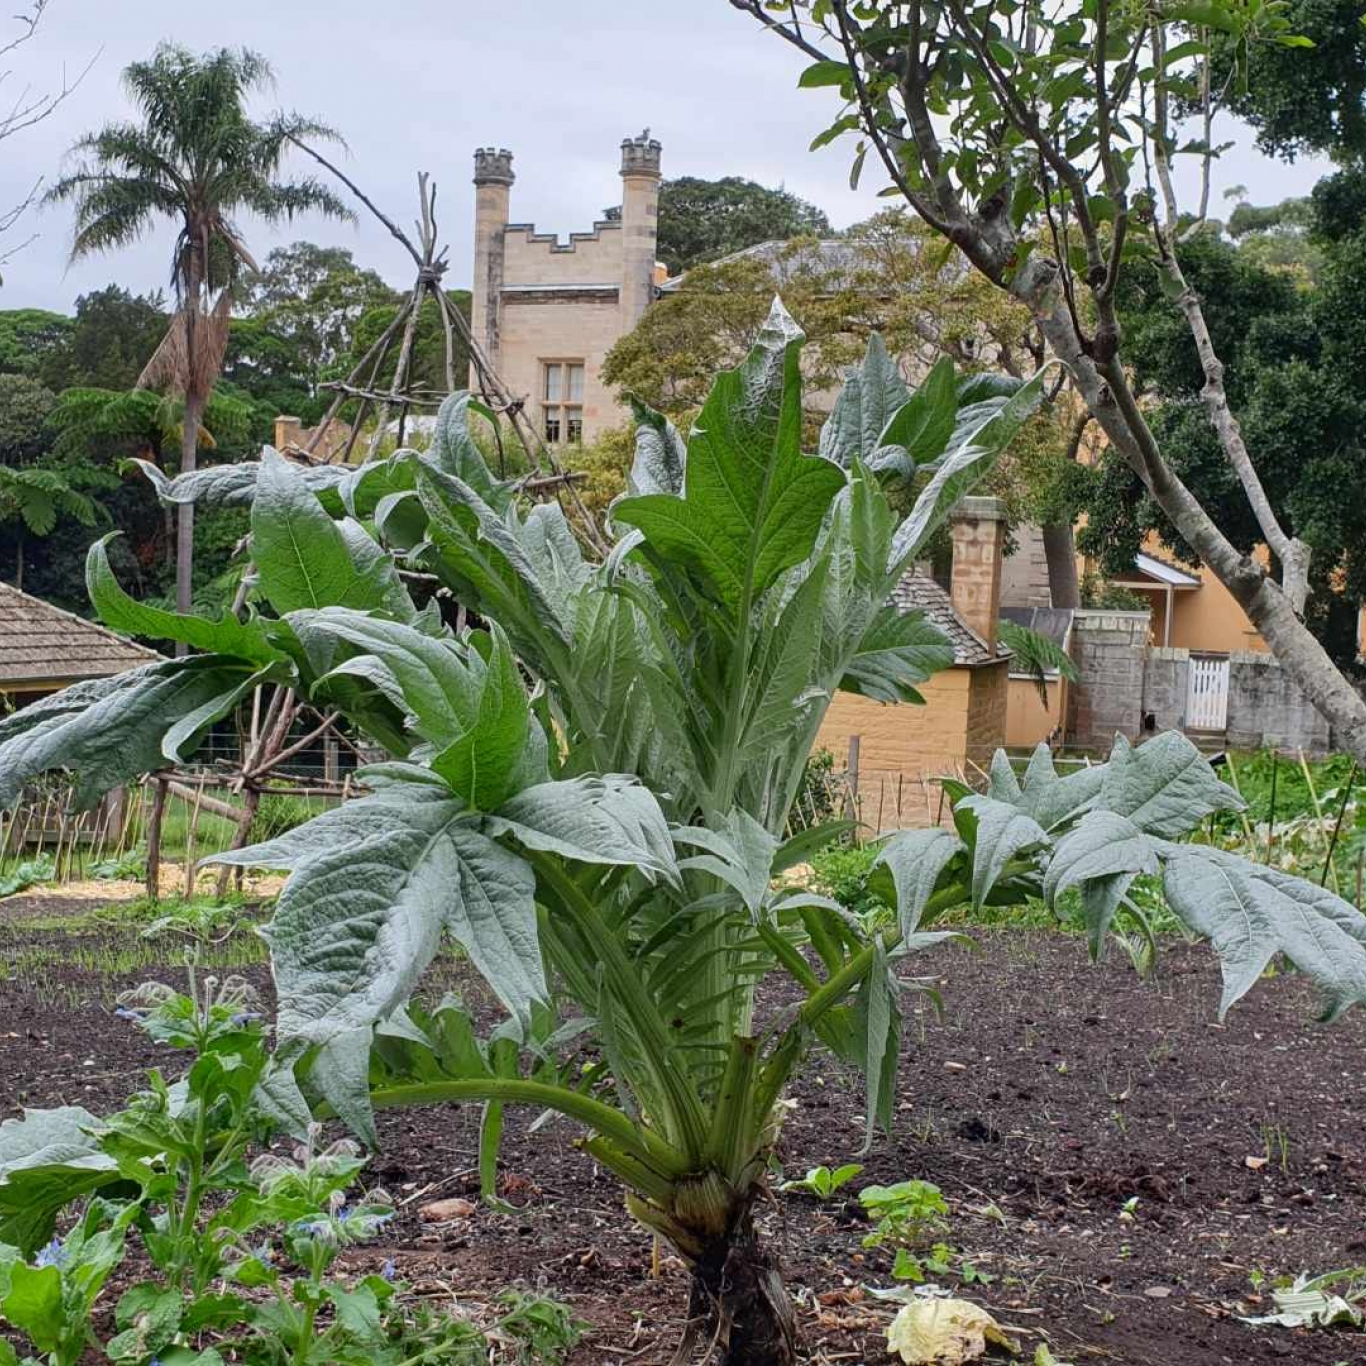 Large leafy green plant with house in background.